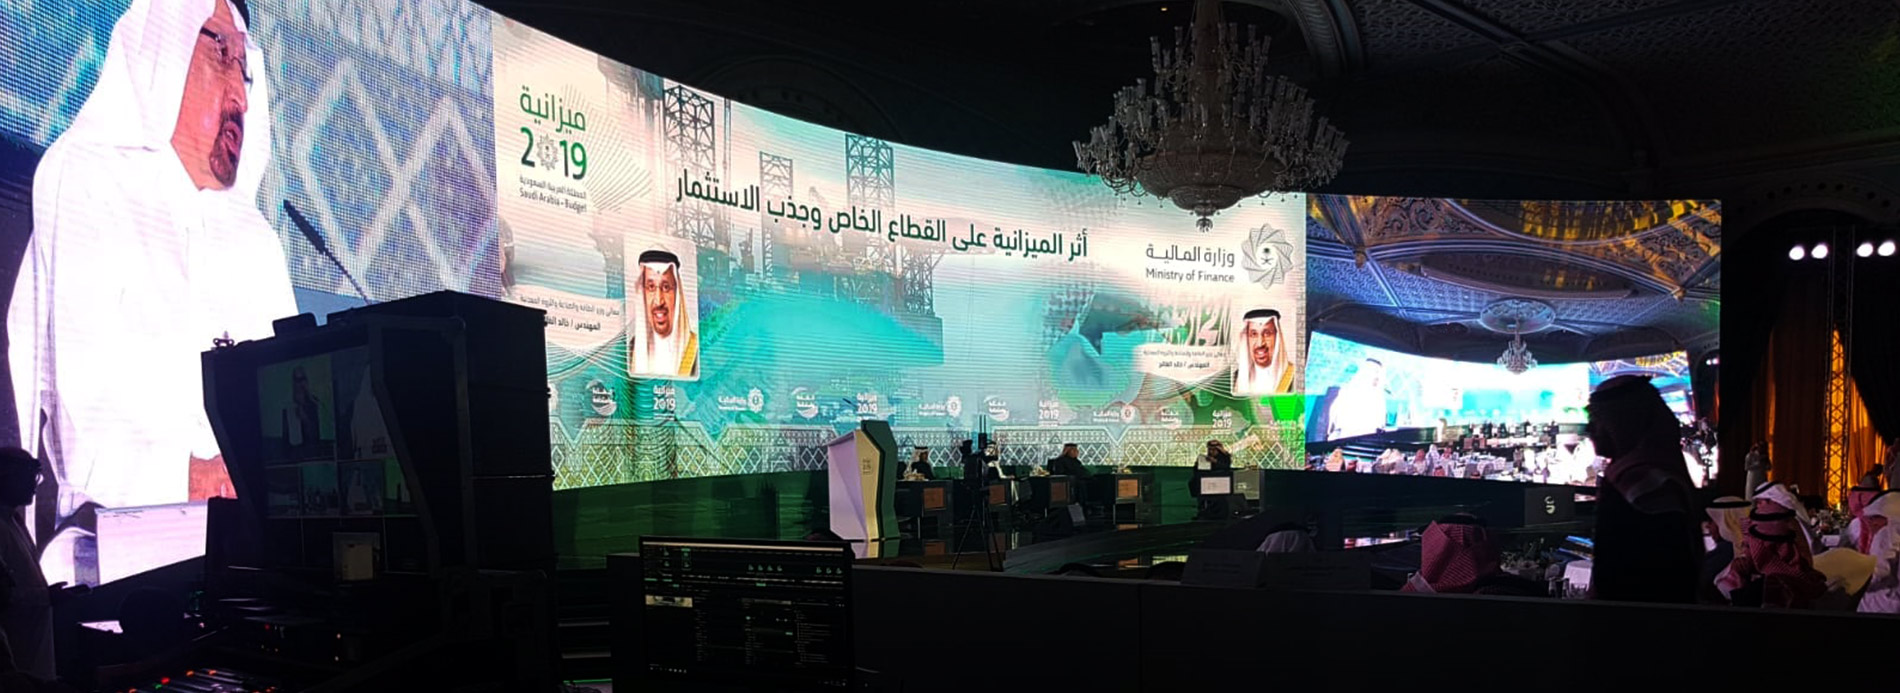 One of the biggest stage led screen applications in MENA region was produced by LEDECA